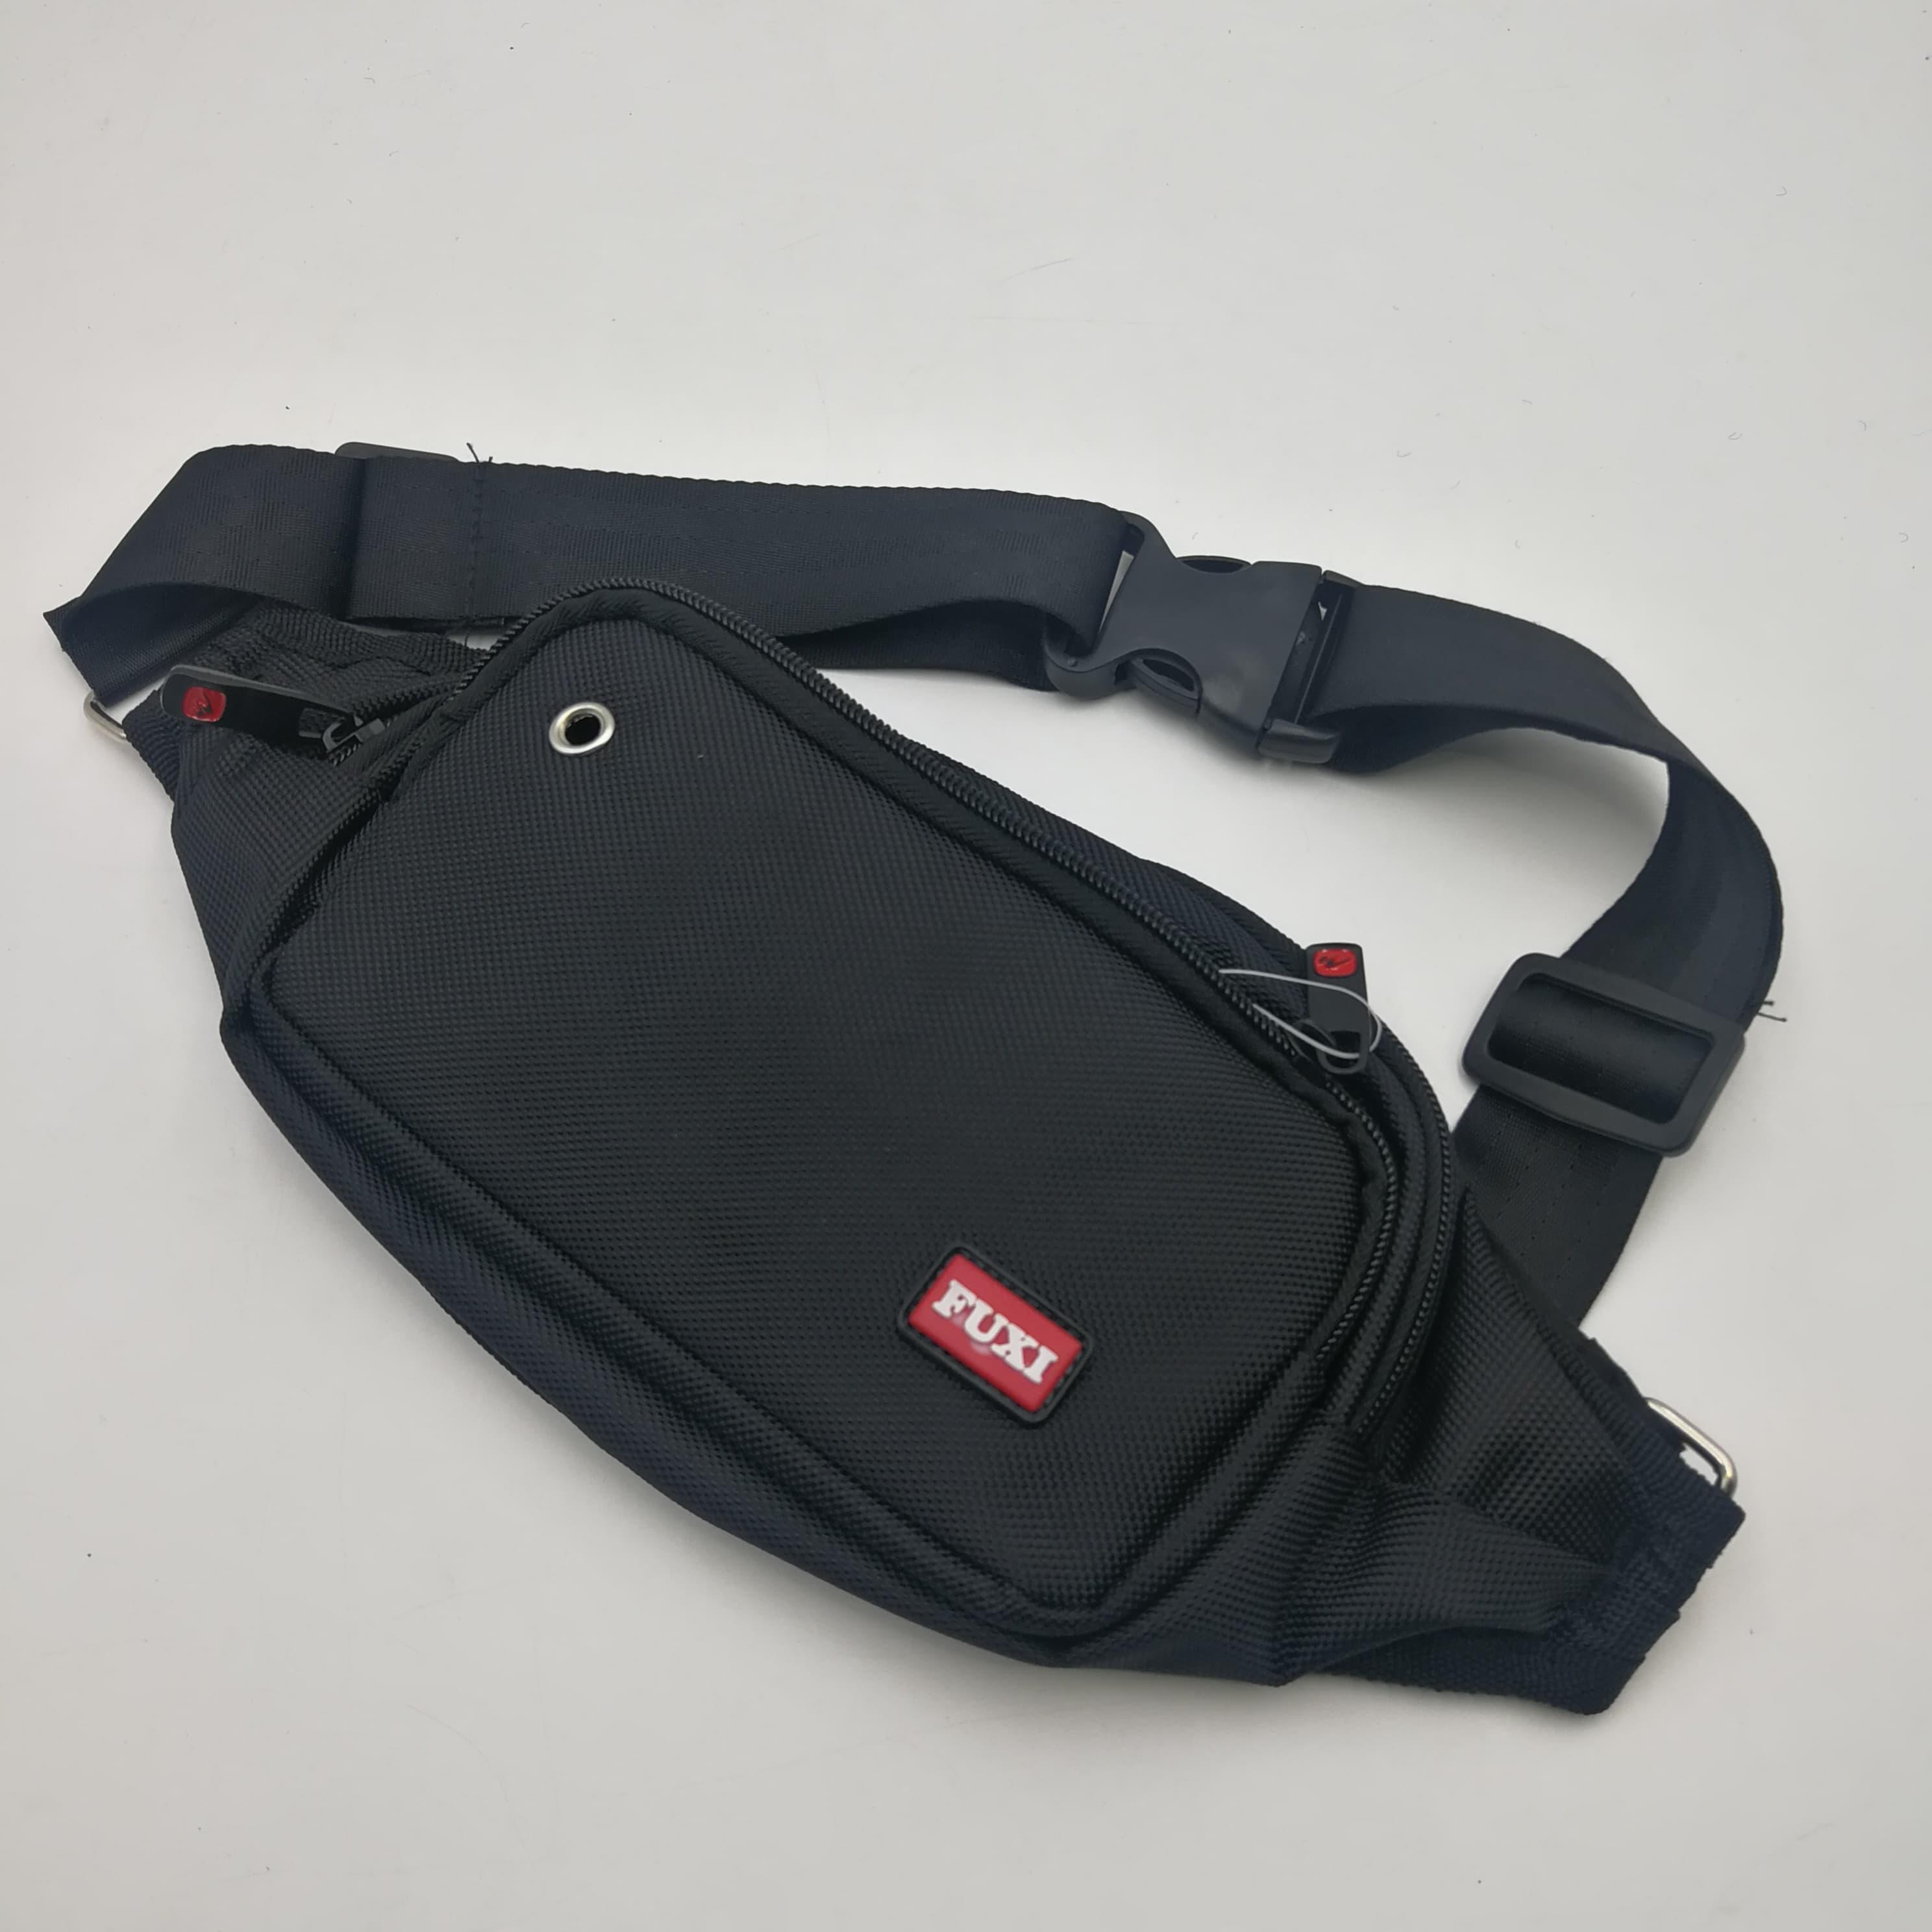 9b4a13b3a90 Waist Bags for sale - Fanny Packs Online Deals & Prices in ...